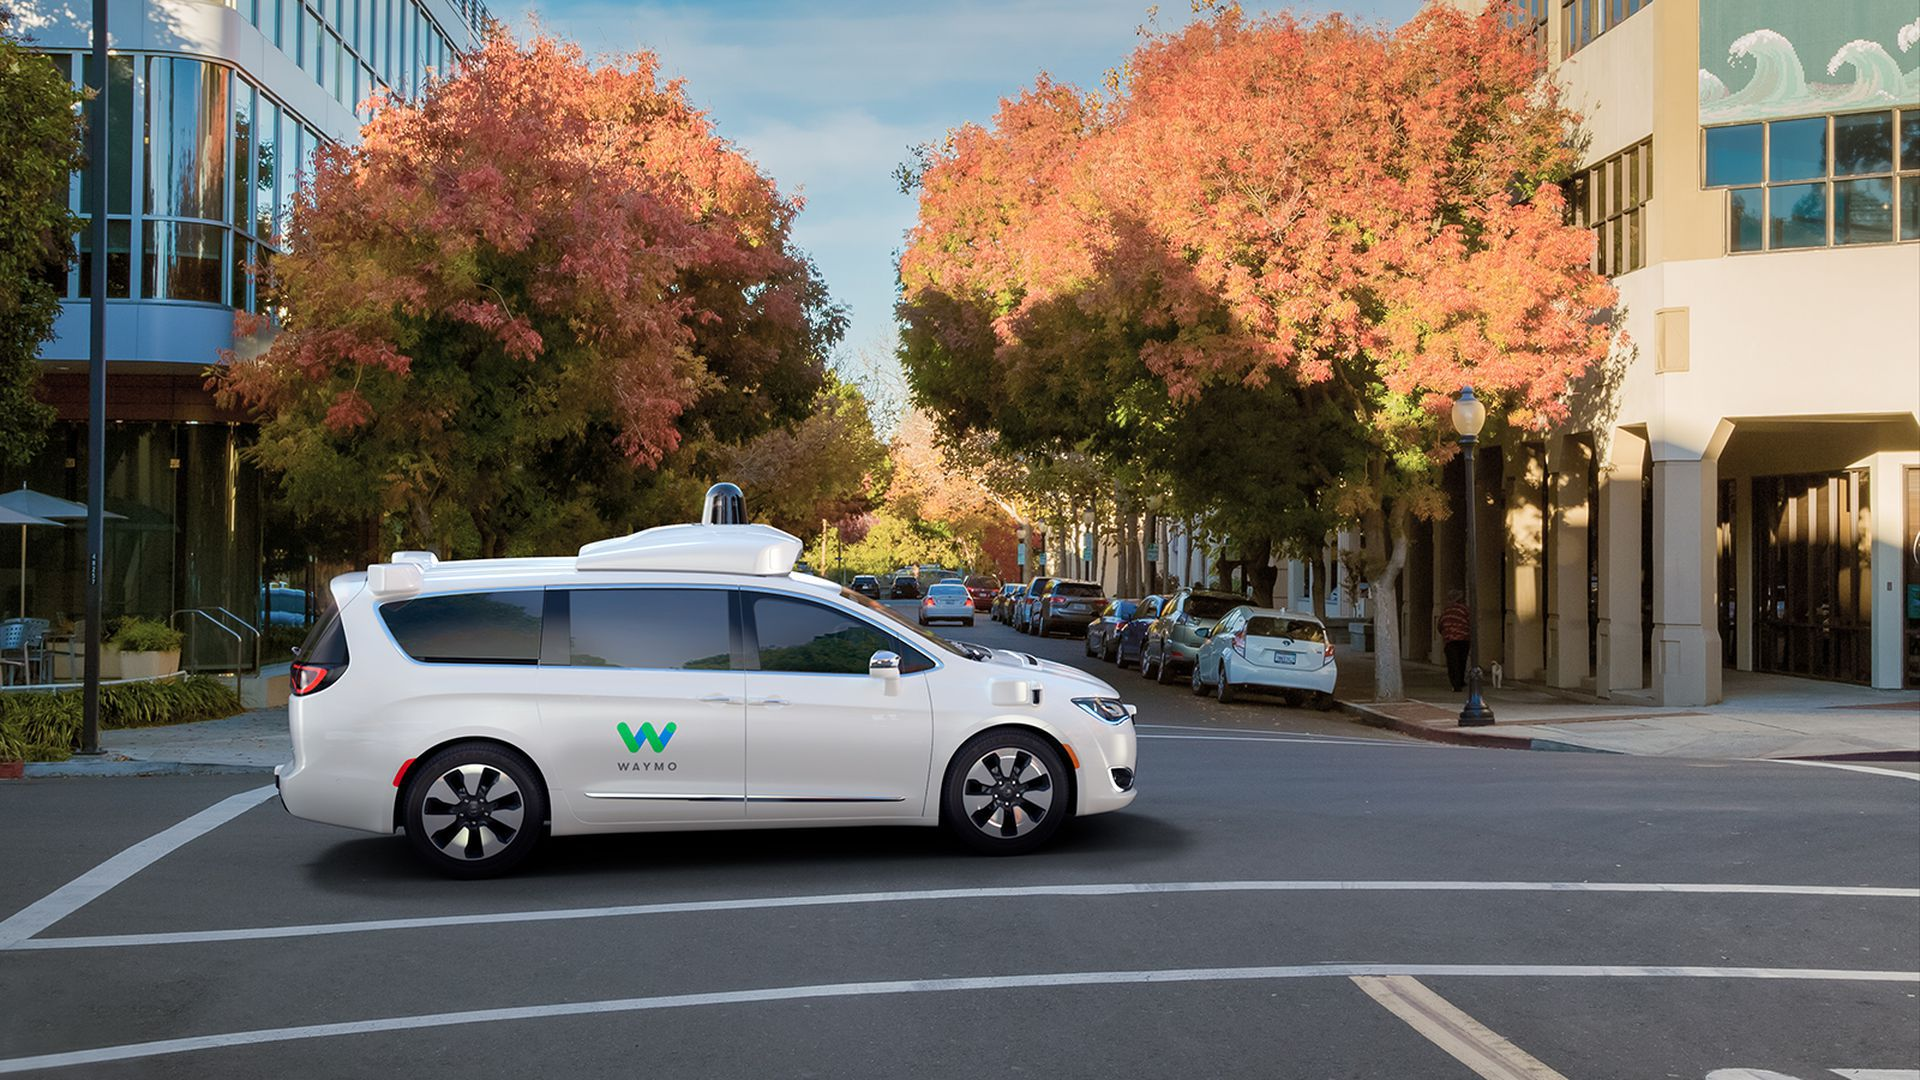 Photo of Waymo car on the street